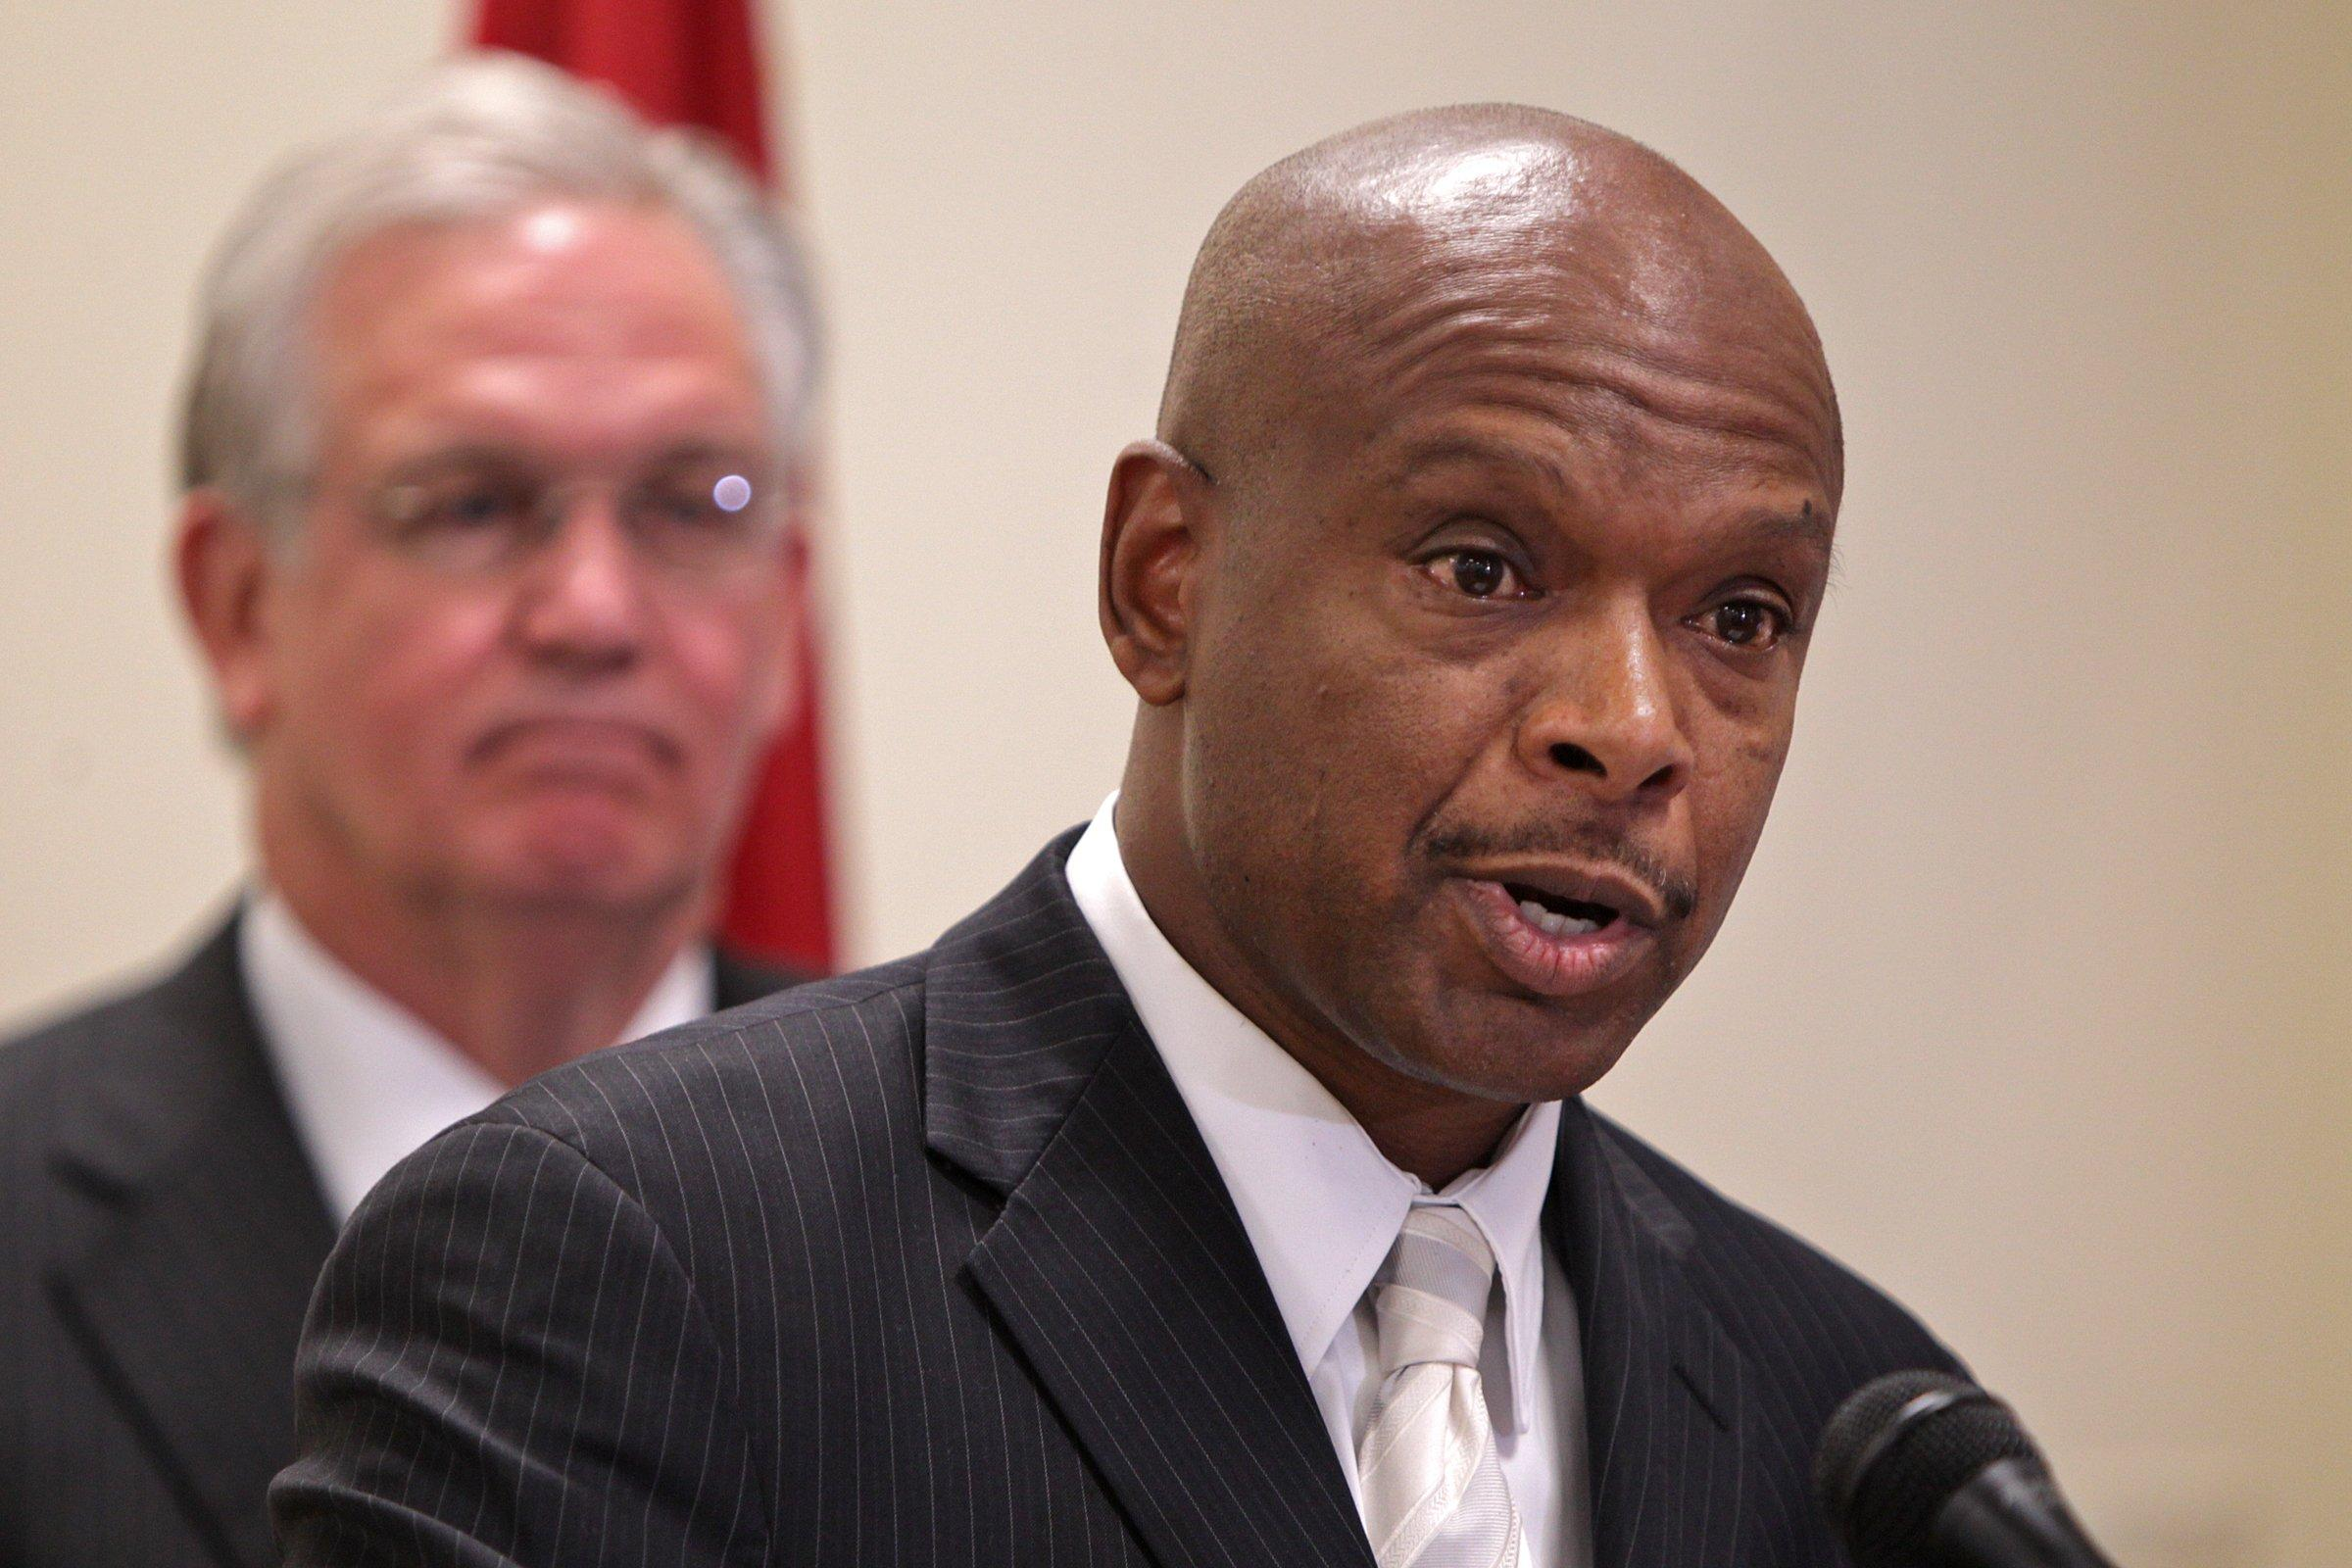 Missouri public safety director resigns 6 months into job